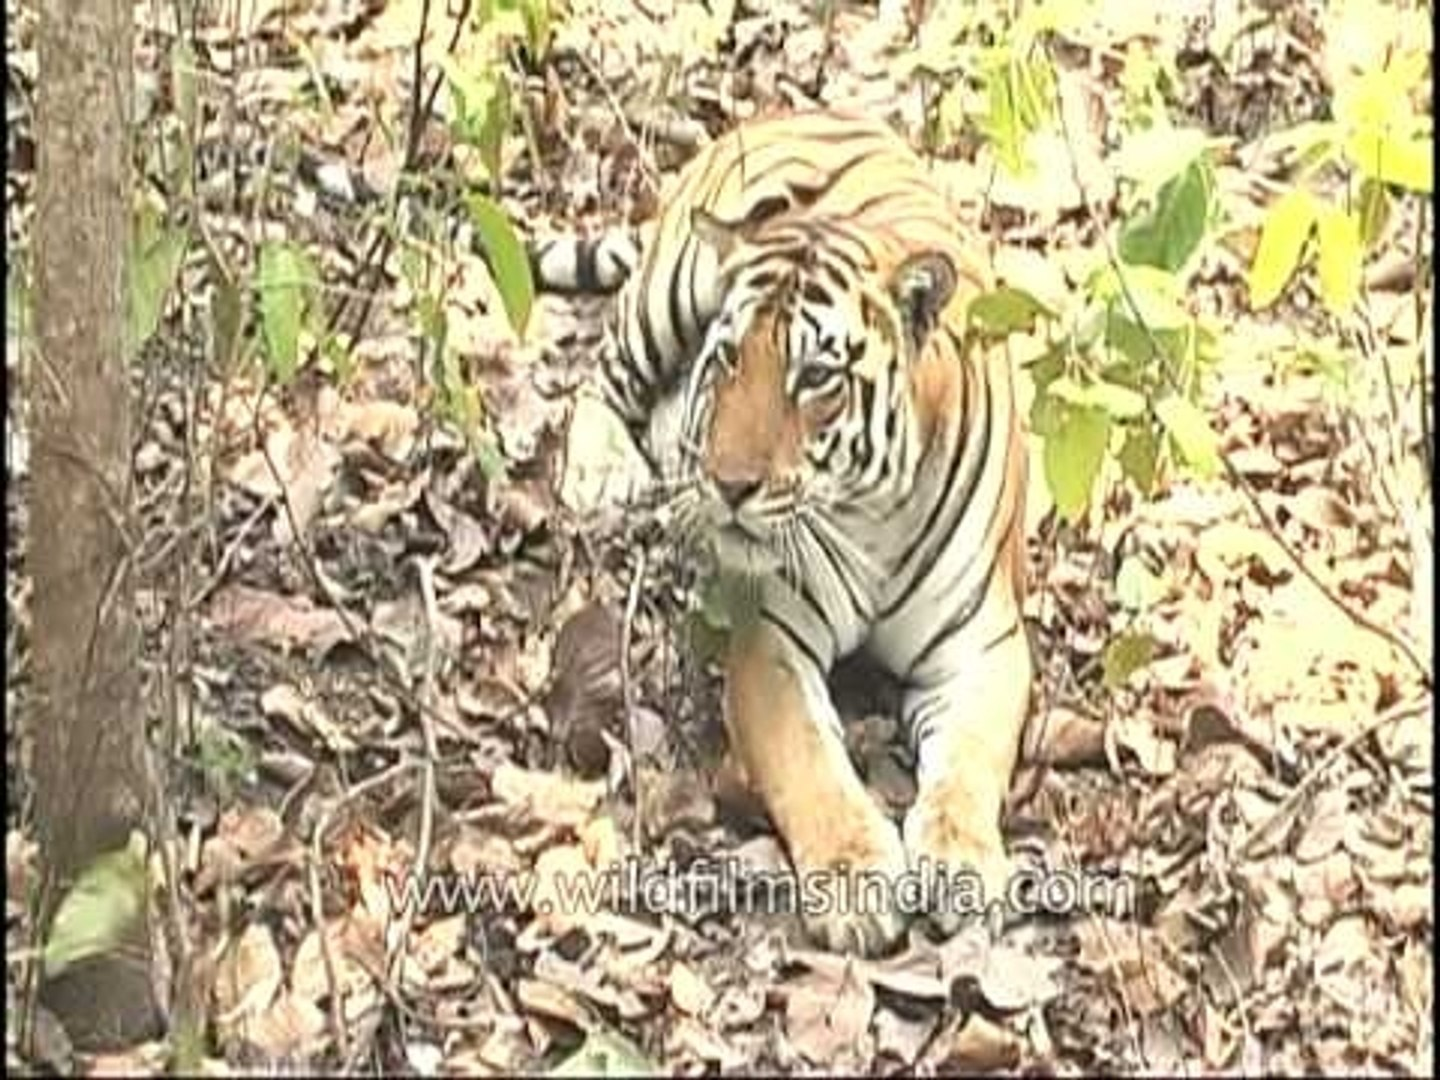 Tiger relaxing under a tree, Kanha National Park